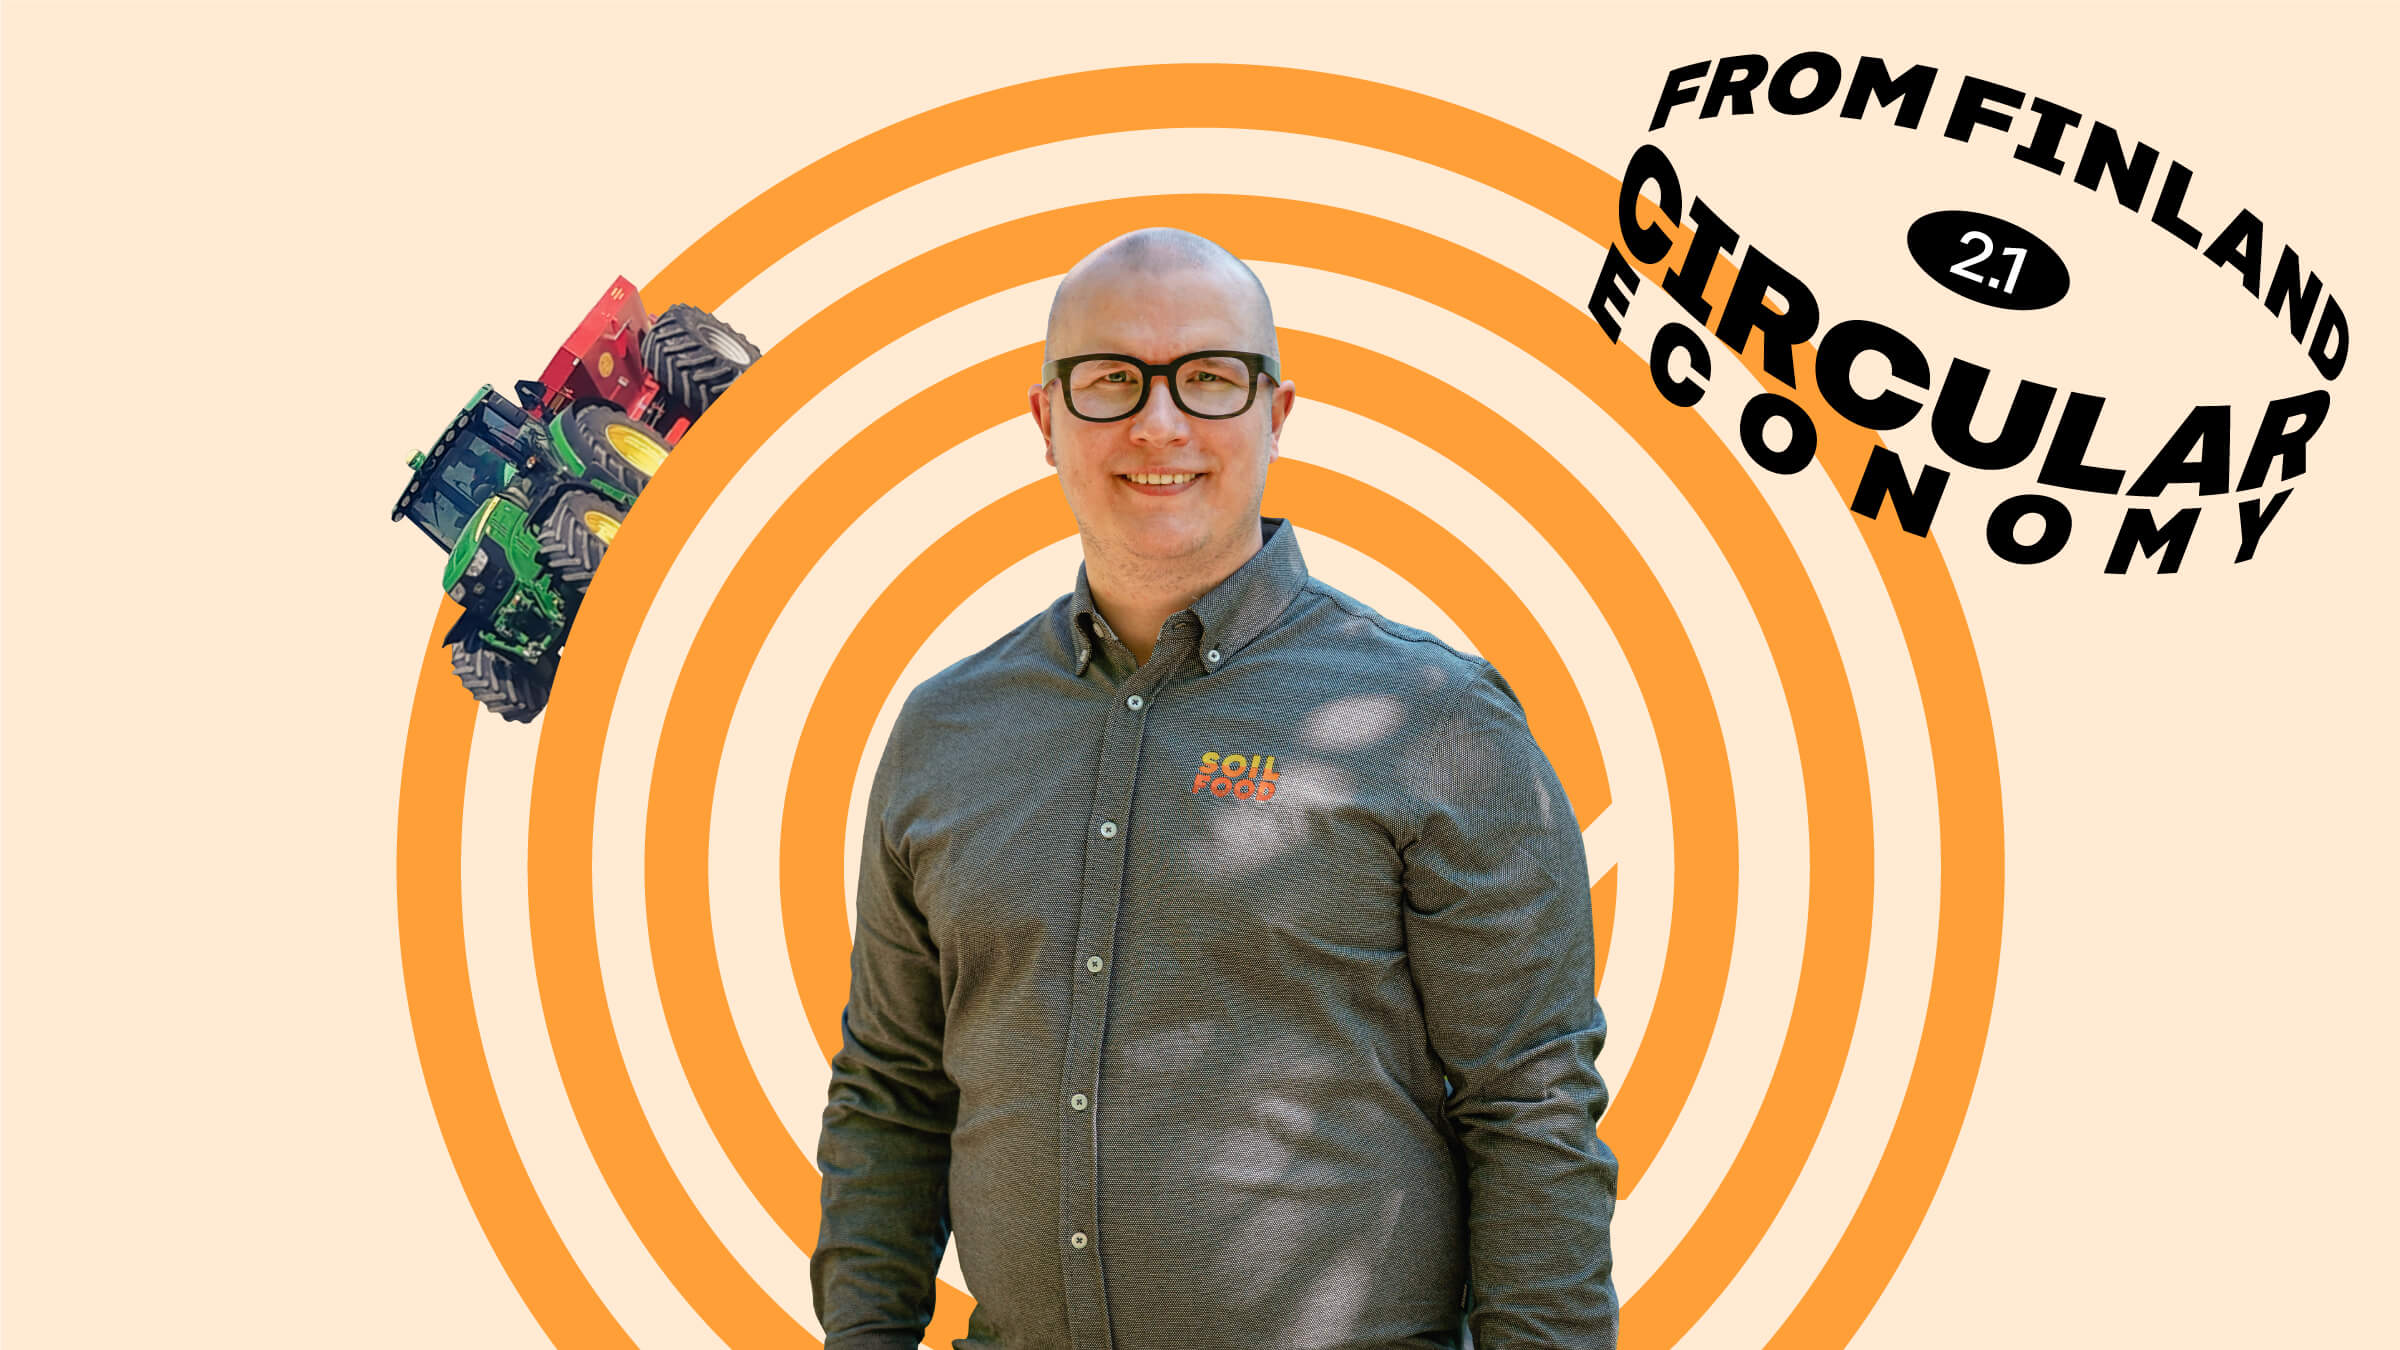 Soilfood's CEO and founder Eljas Jokinen on an orange background with a tractor.